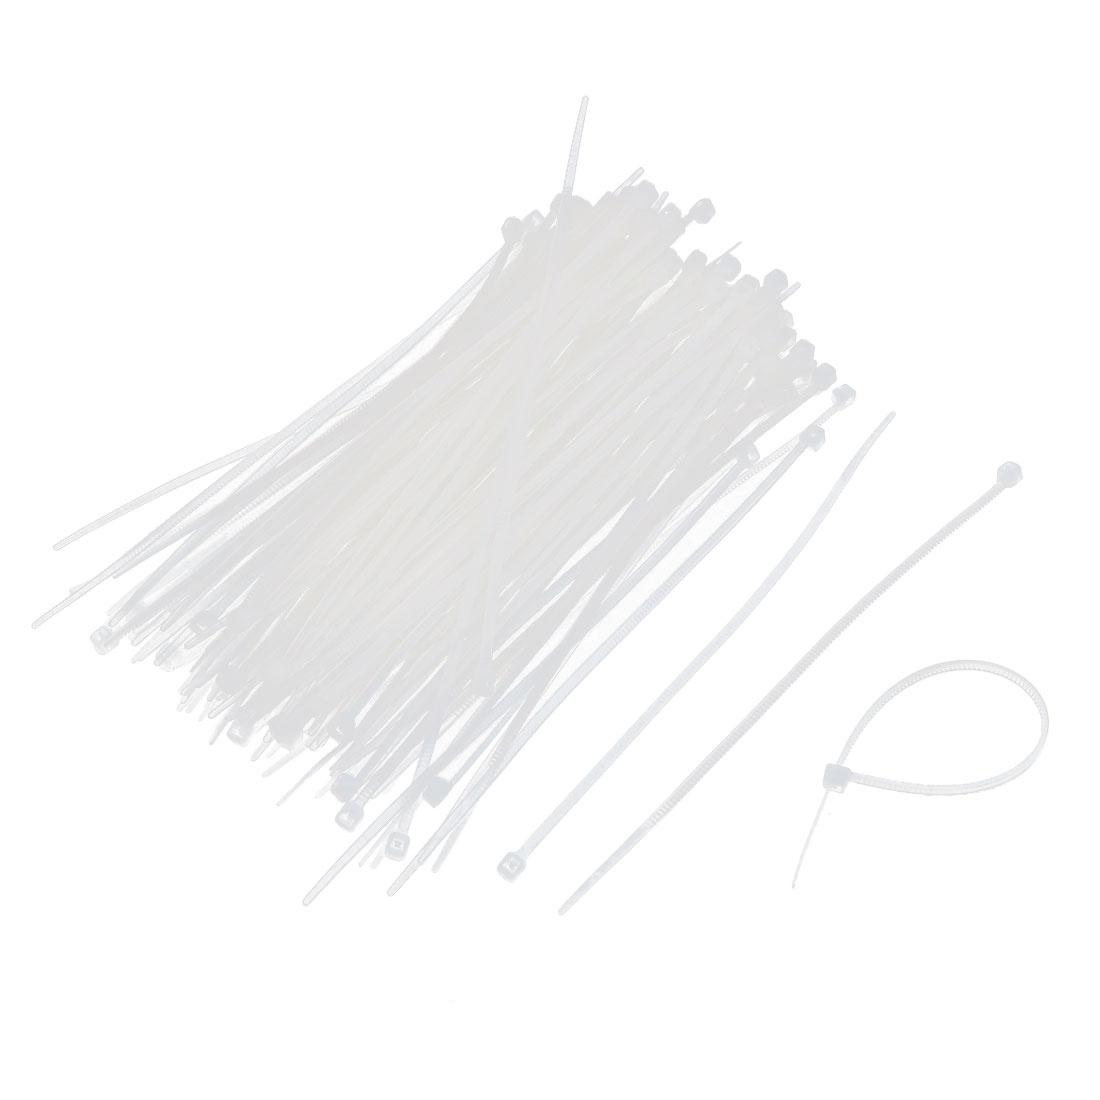 "4.5"" Length Nylon Self Locking Reusable Cable Wire Strap Zip Tie White 150pcs"